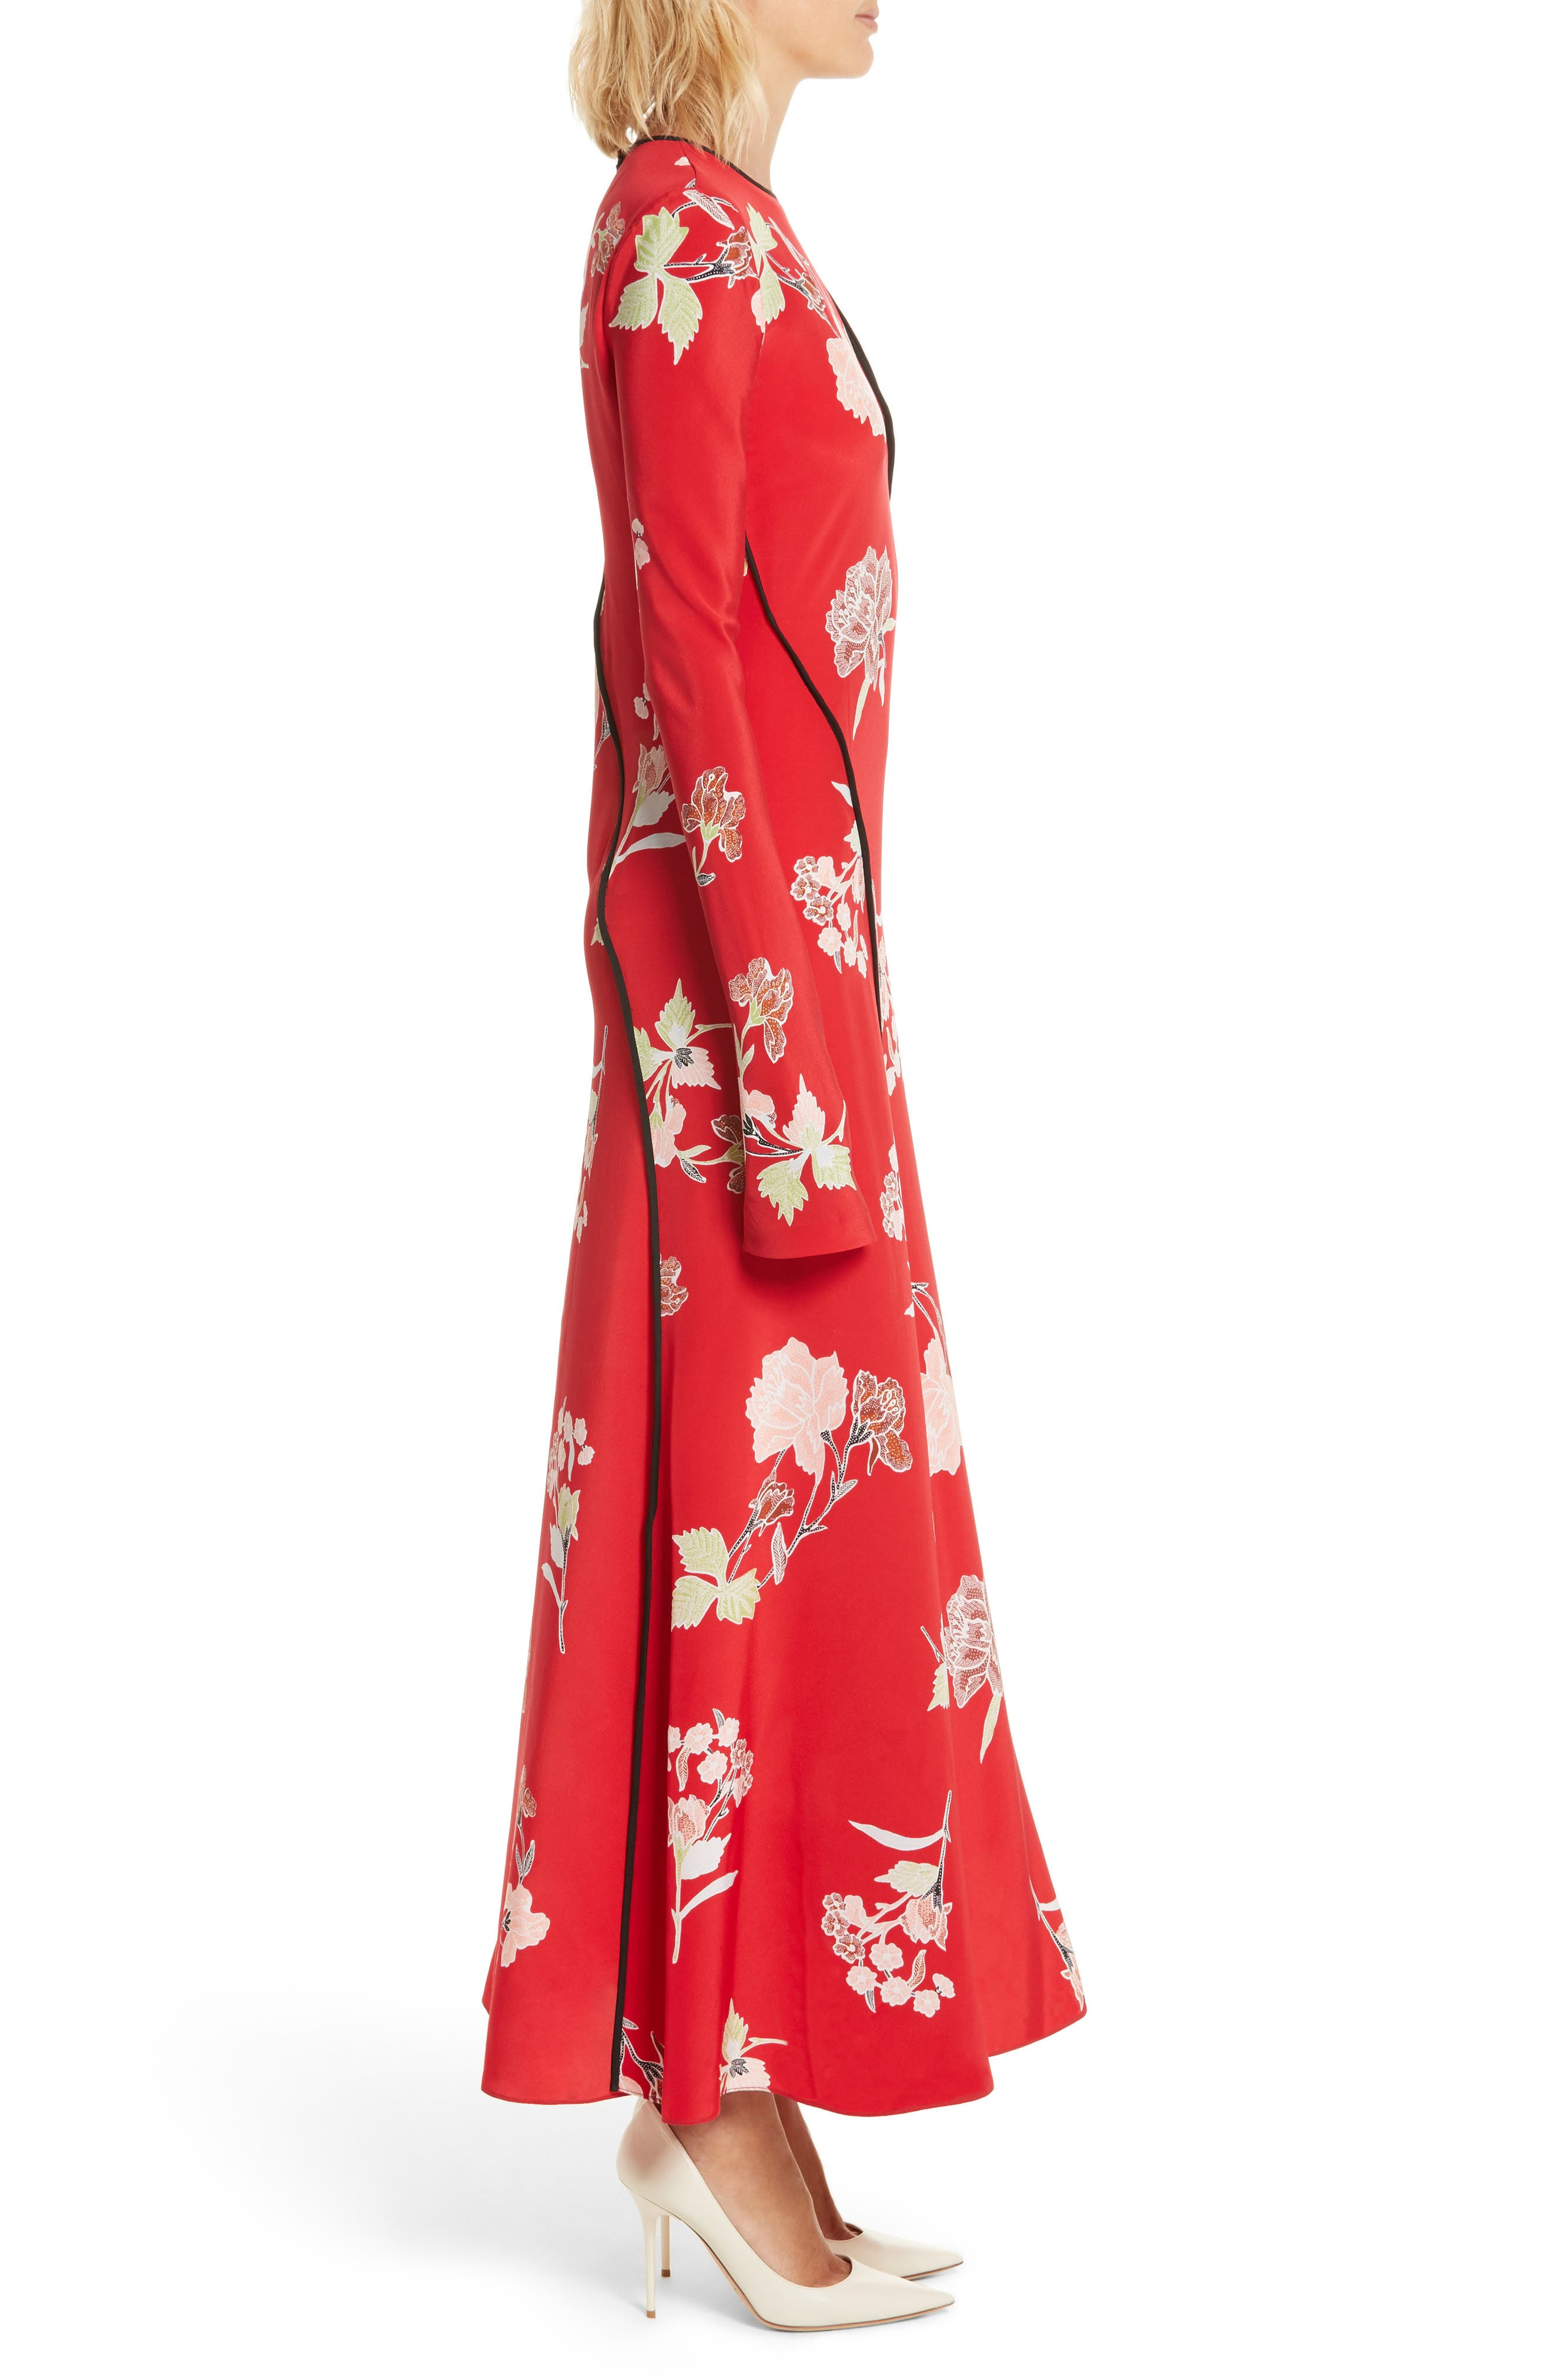 Bias Cut Floral Silk Maxi Dress,                             Alternate thumbnail 3, color,                             Everton Lipstick / Black